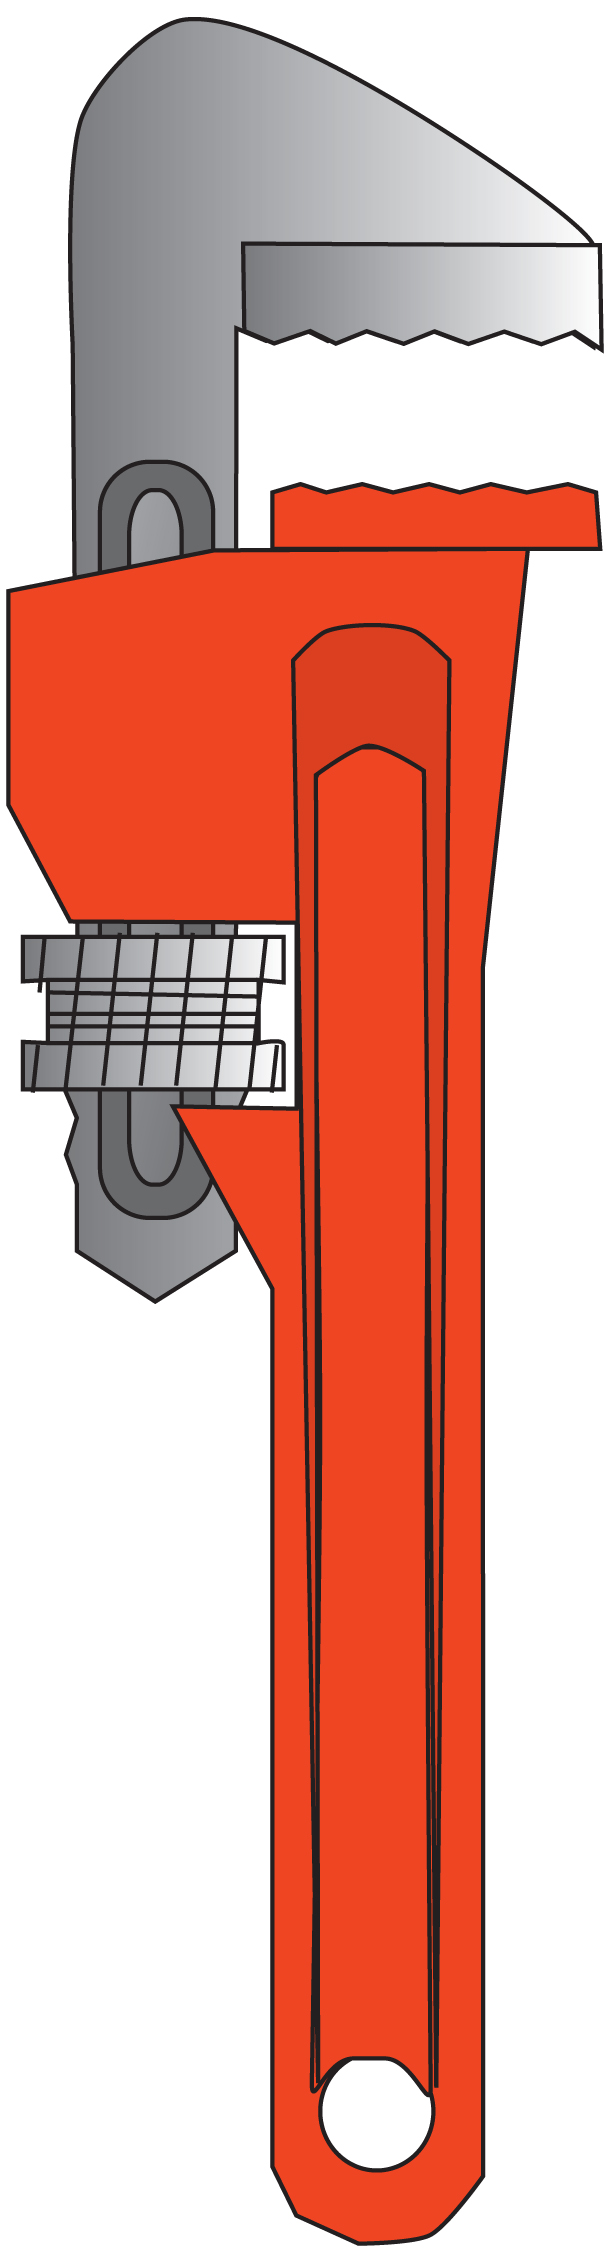 614x2252 Monkey Wrench Vector Clipart